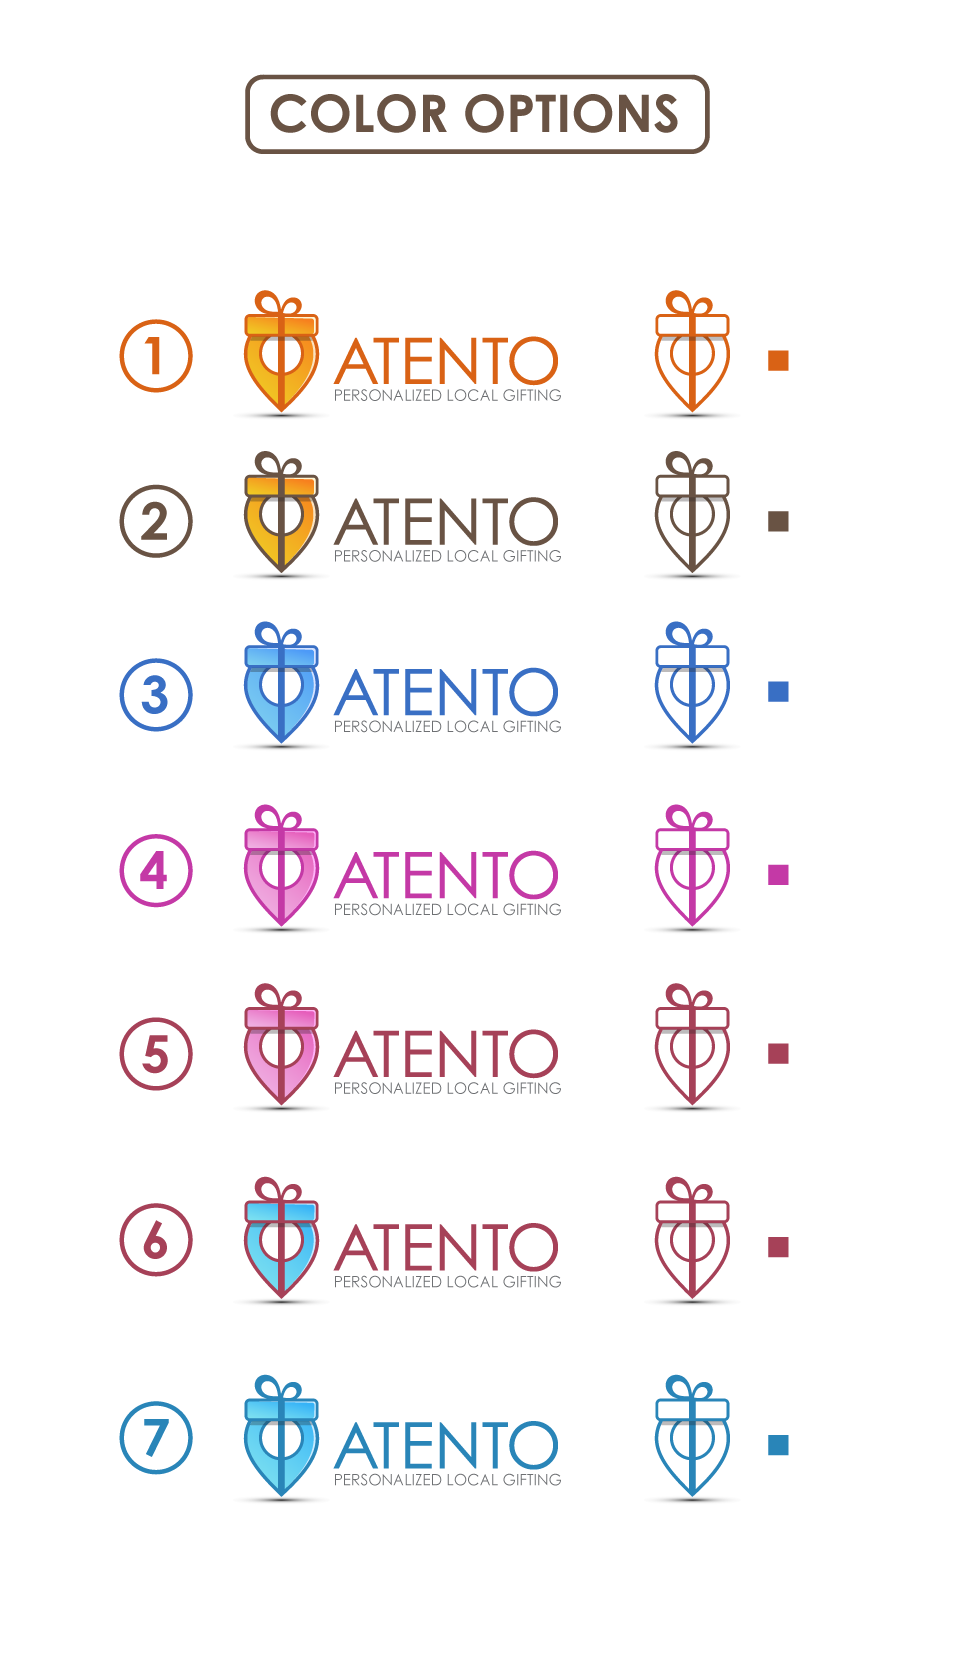 Design a great brand identity for Atento gifting platform